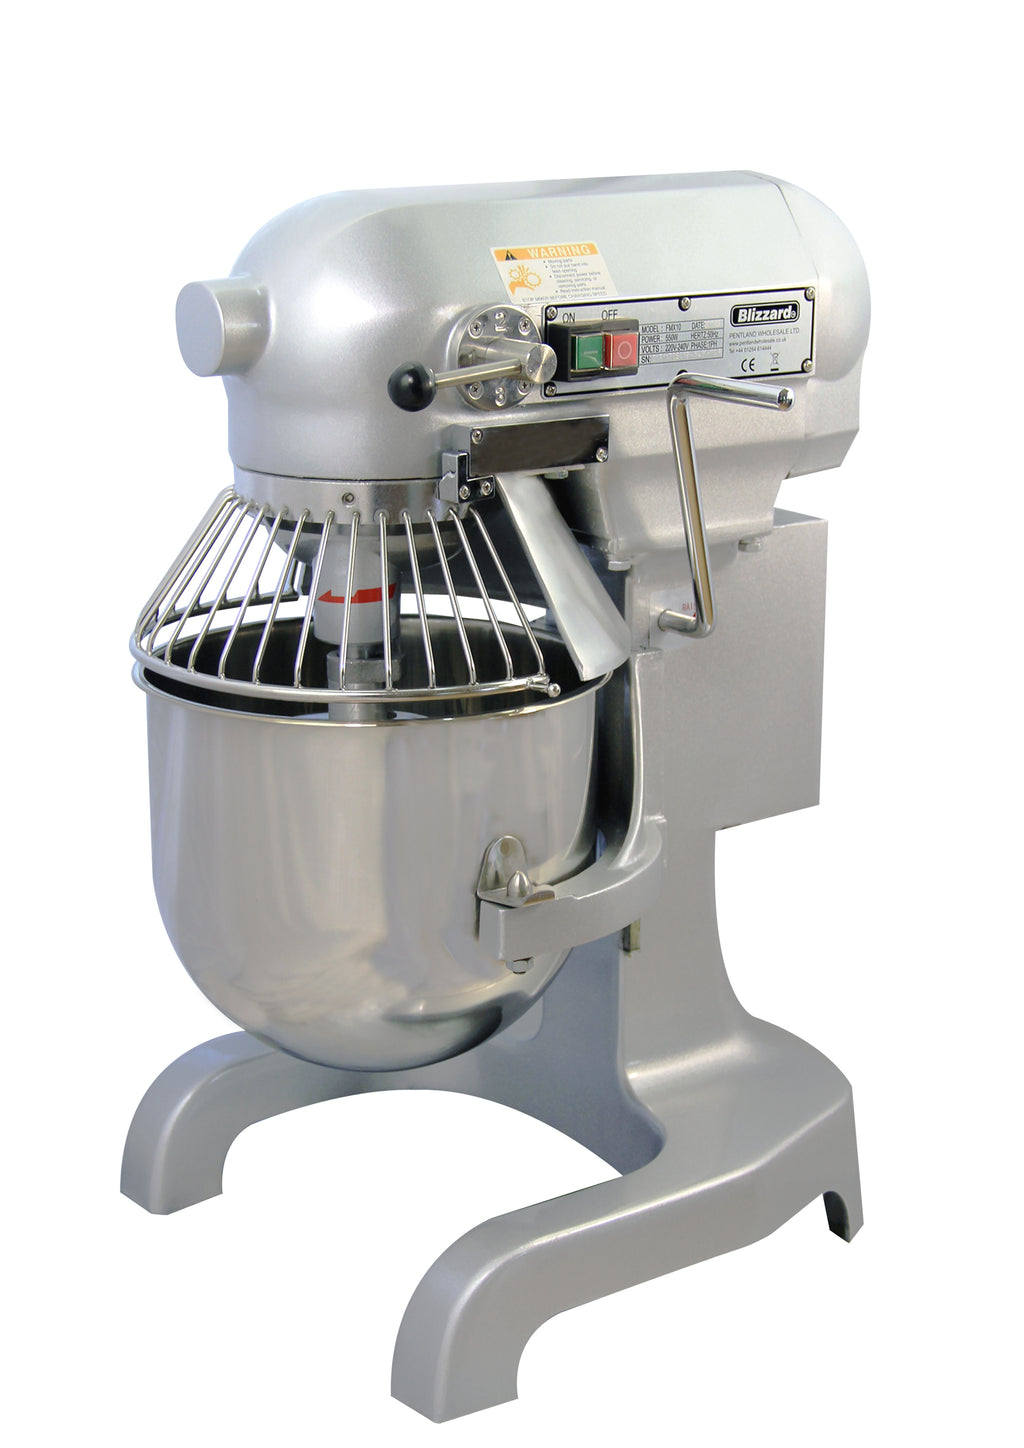 Blizzard - Planetary Mixer - 10 Litre,Planetary Mixer,Busy Chef